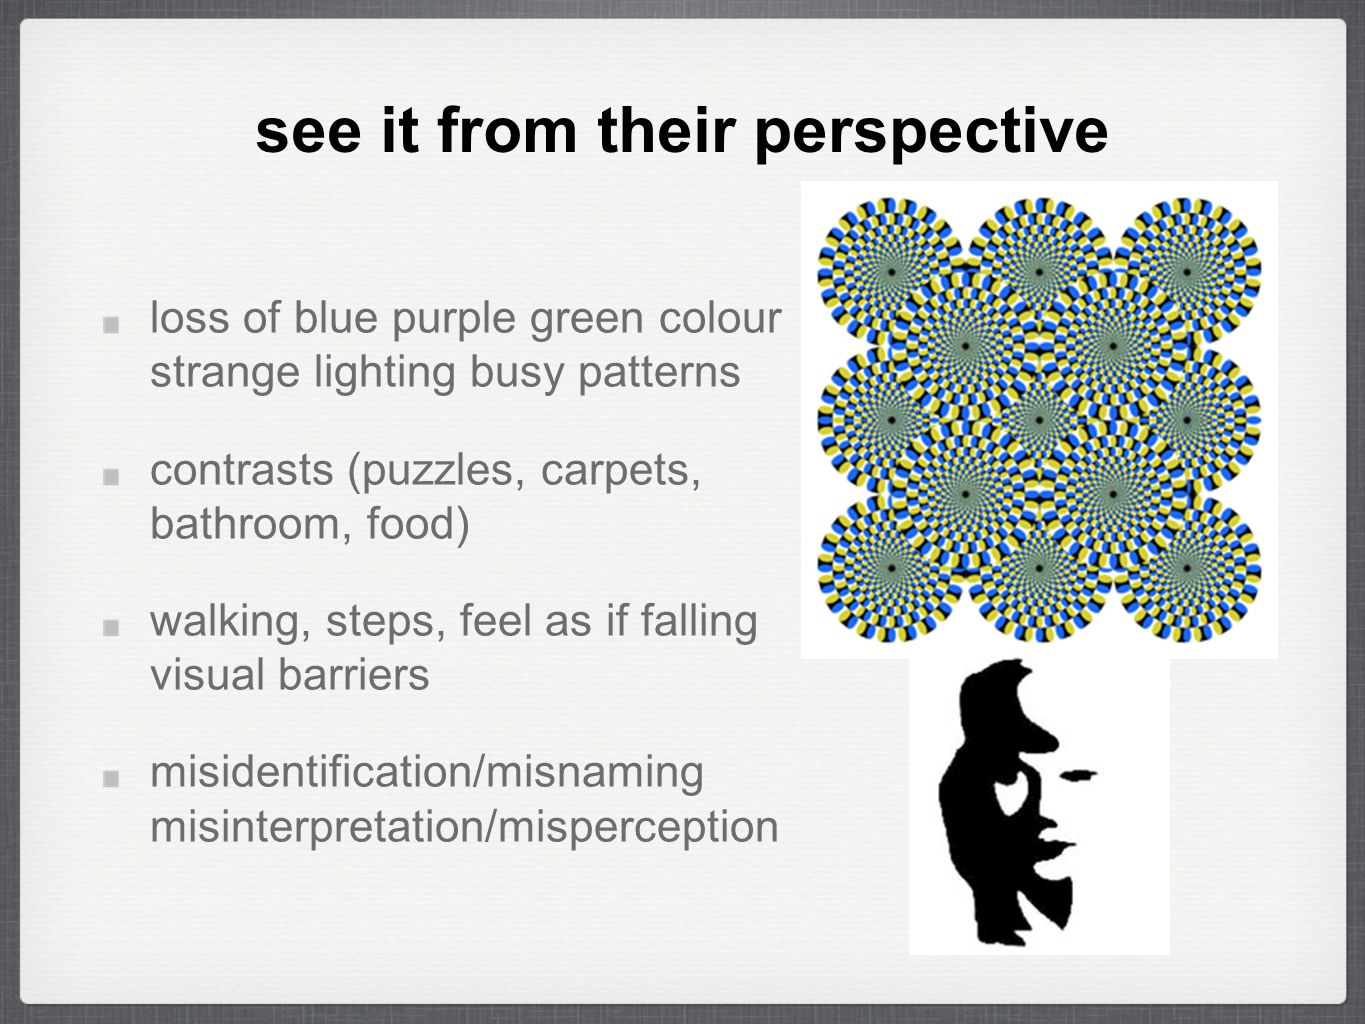 see it from their perspective loss of blue purple green colour strange lighting busy patterns contrasts (puzzles, carpets, bathroom, food) walking, steps, feel as if falling visual barriers misidentification/misnaming misinterpretation/misperception